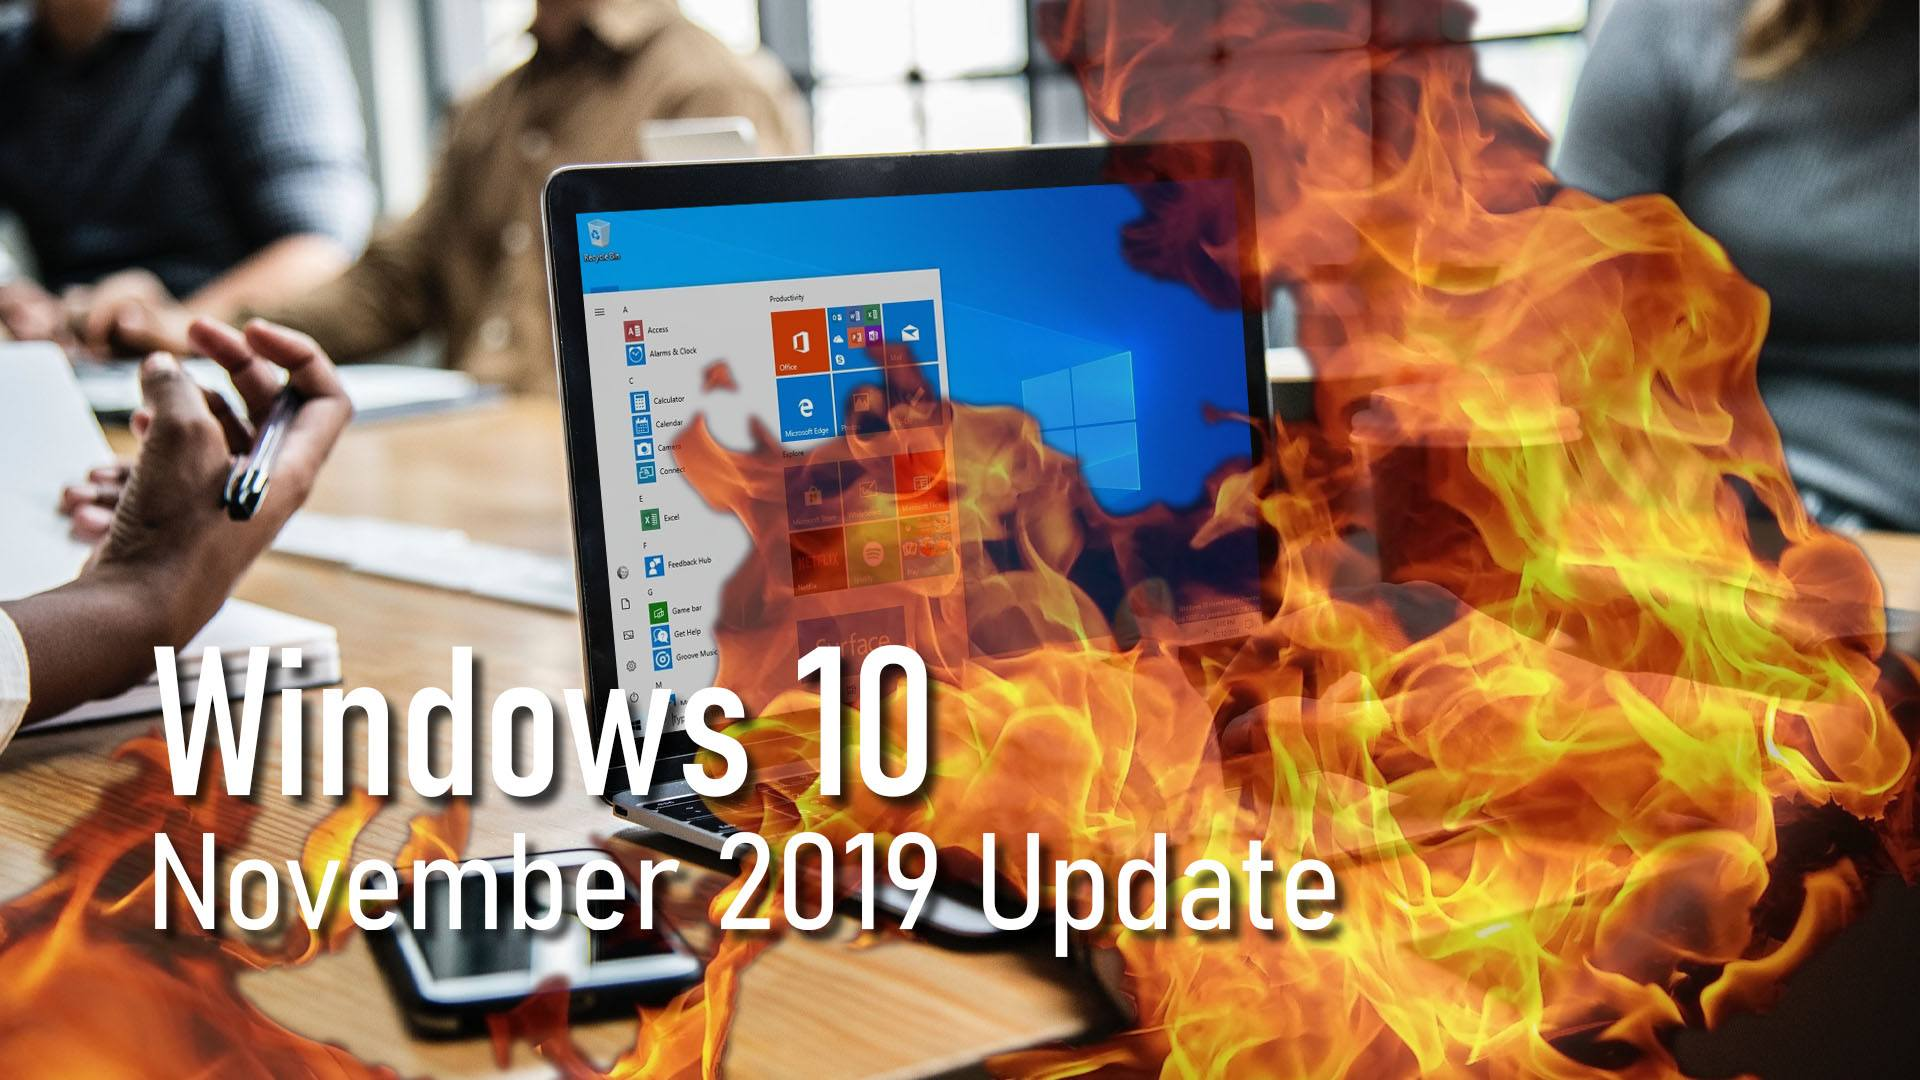 Windows-10-November-2019-Update